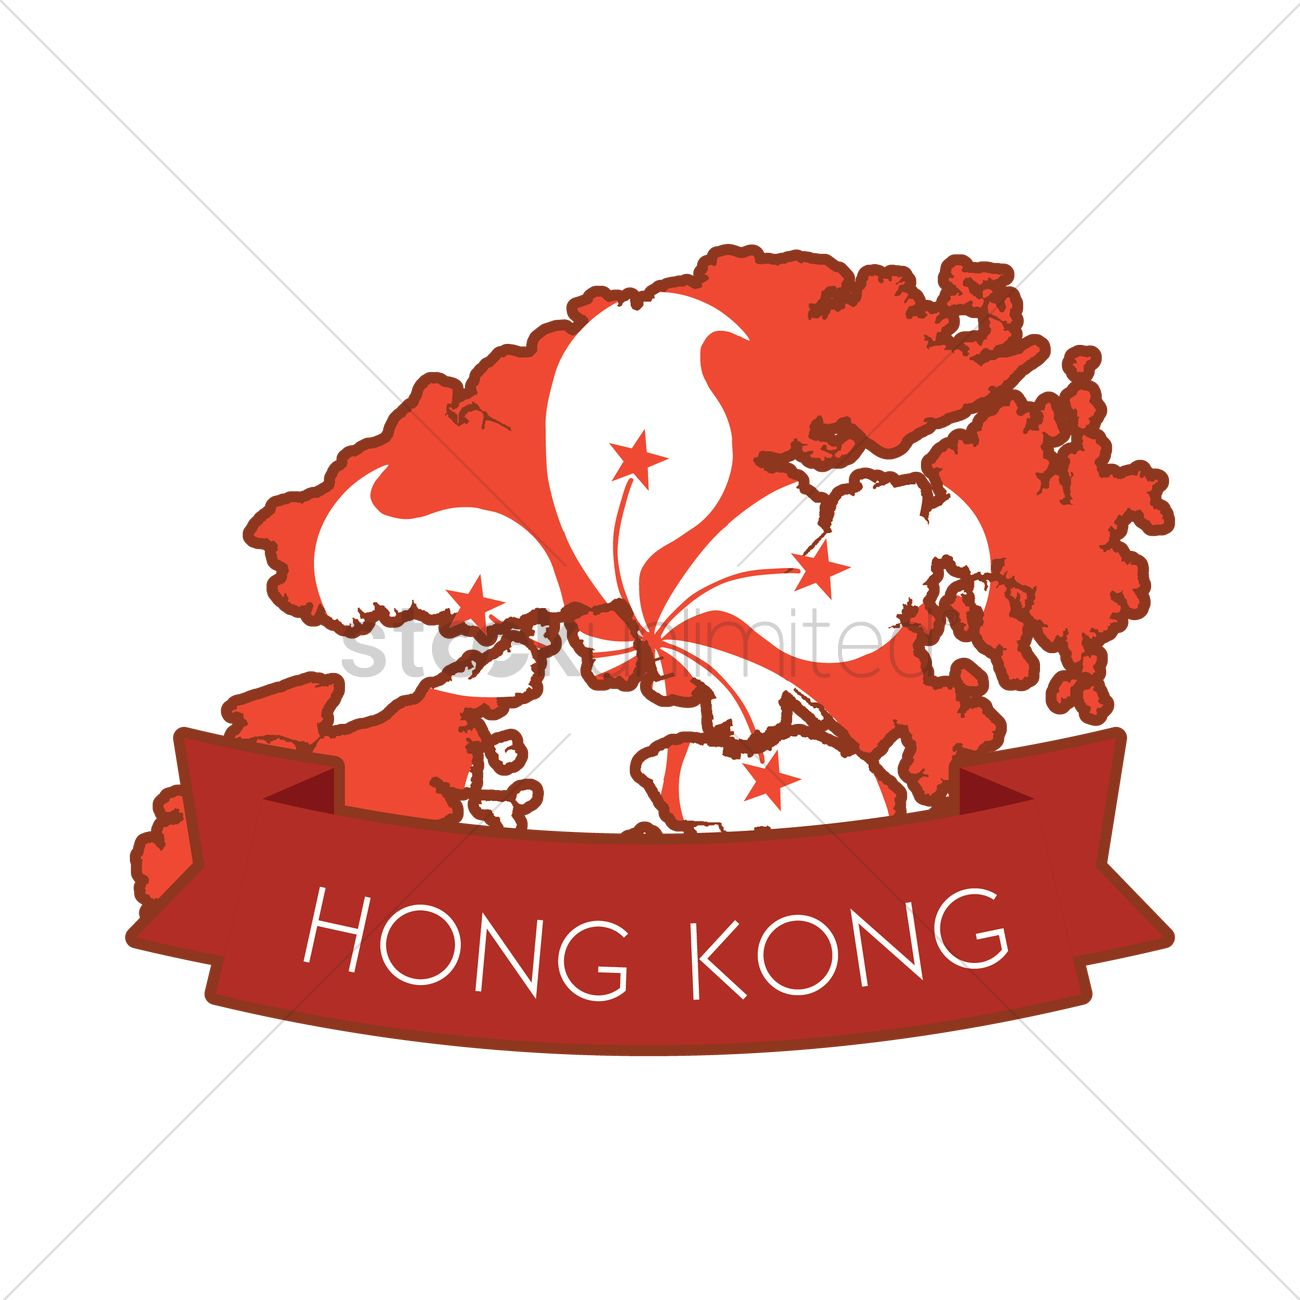 hong kong map icon vector graphic